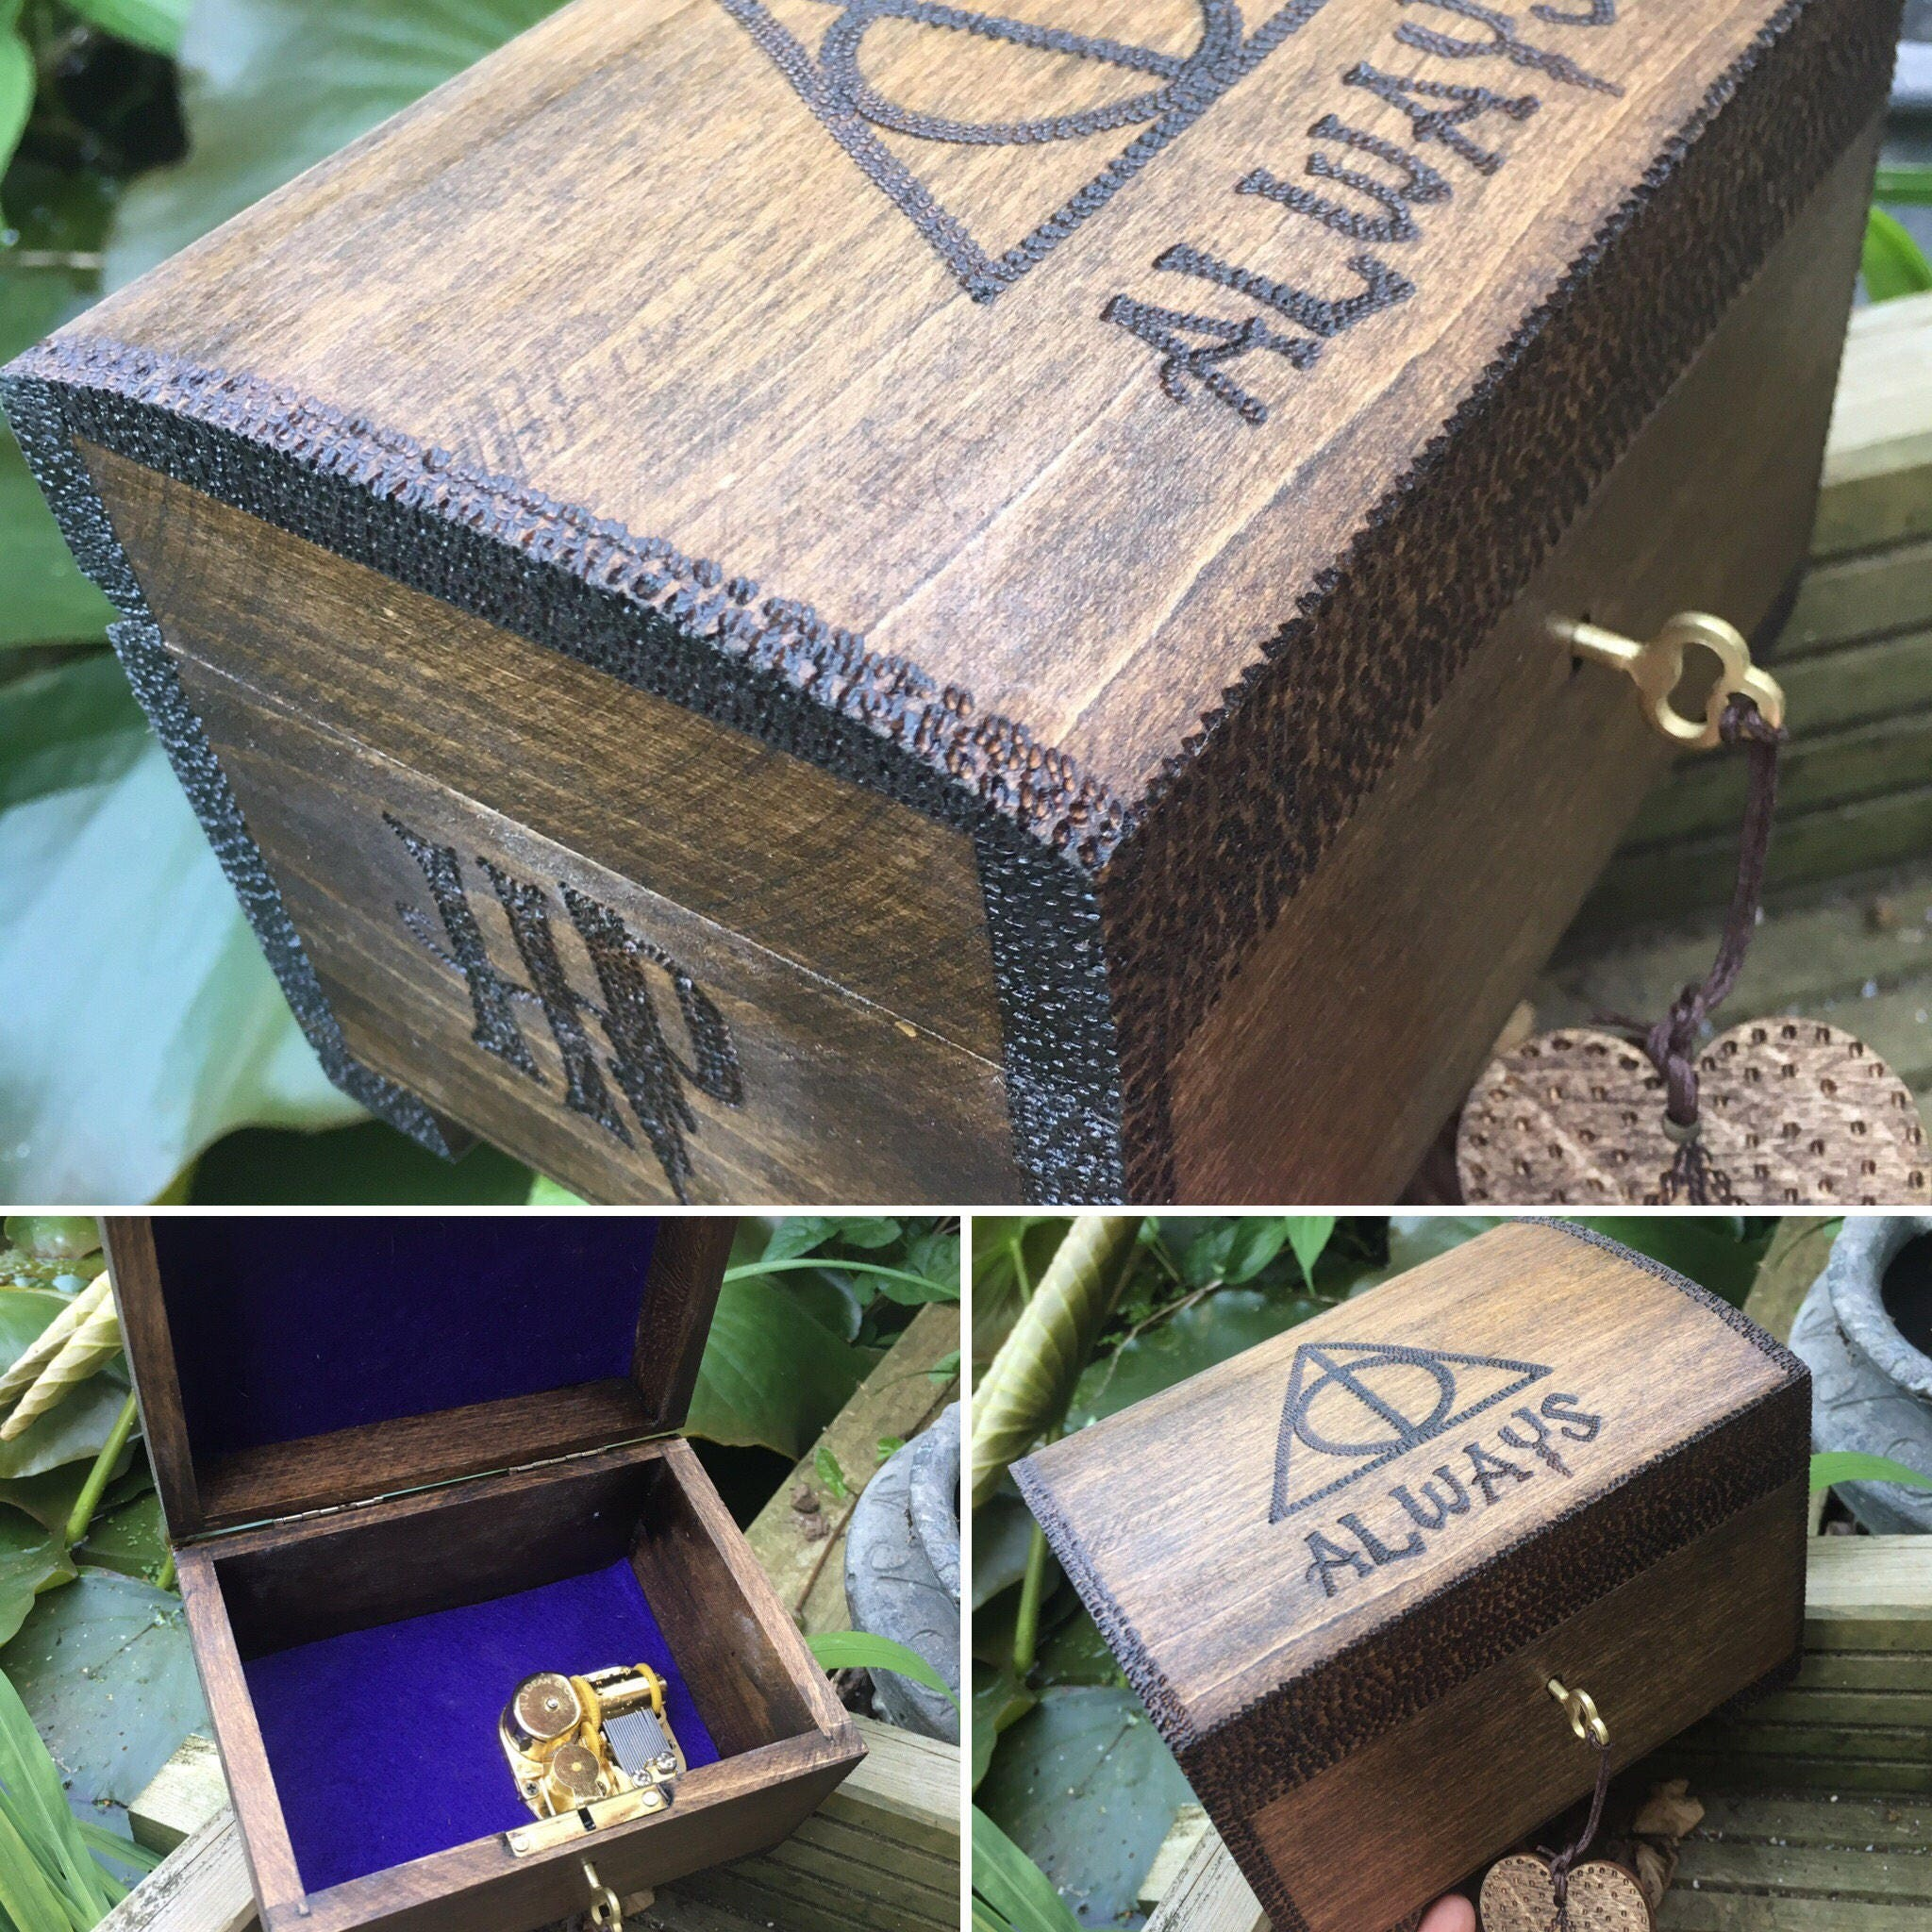 Music box. Lockable Harry Potter themed music box perfect gift for Harry Potter fan. Hedwigs theme.